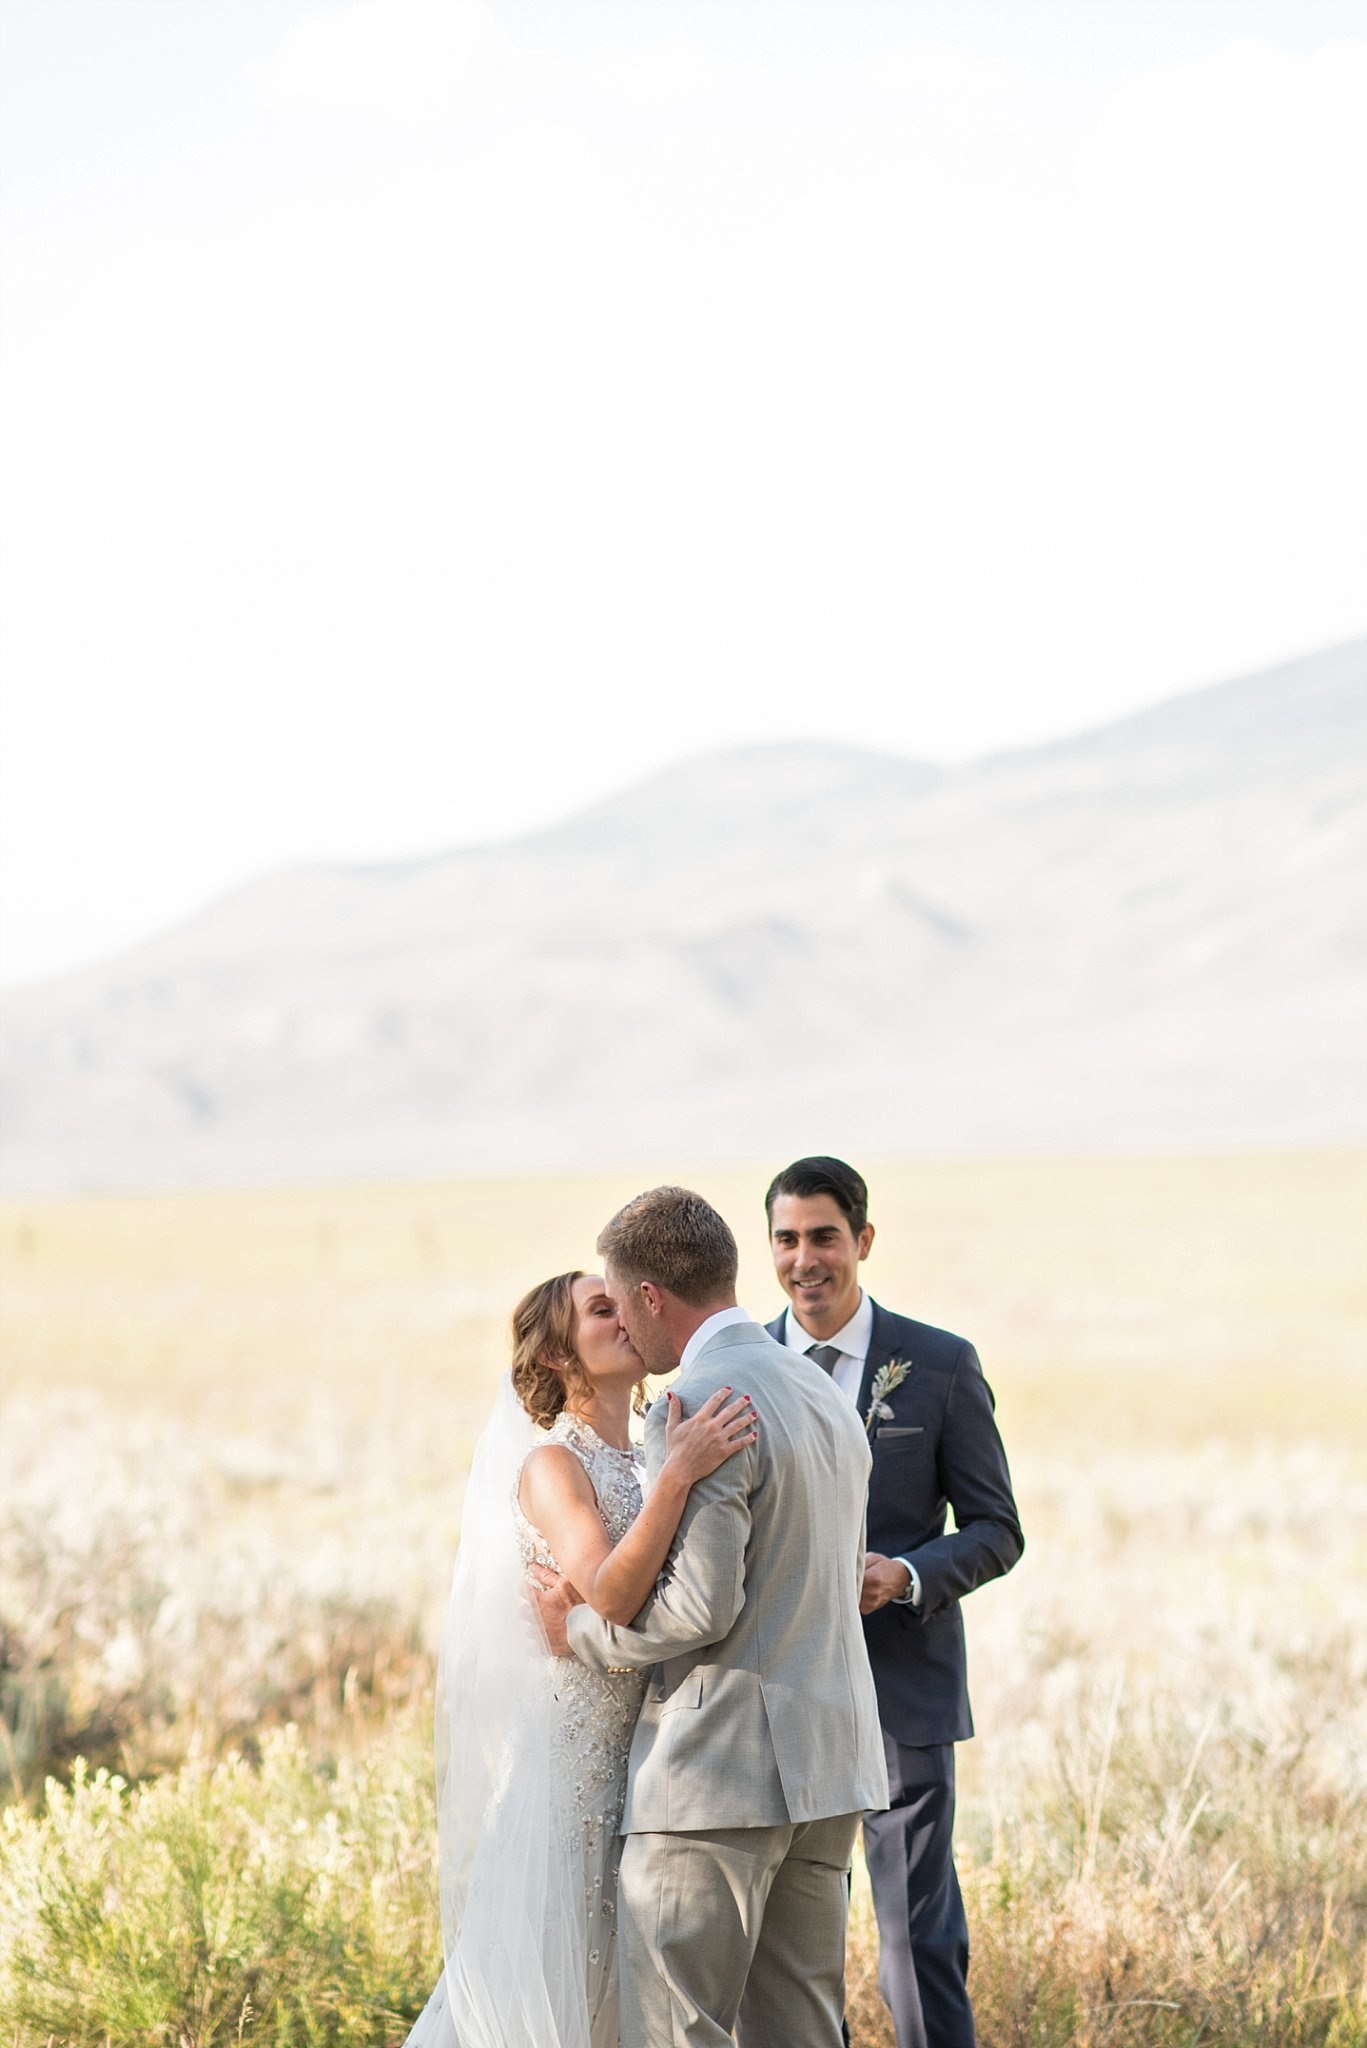 Elizabeth Ann Photography, Denver Wedding Photographer, Fine Art Wedding_2058